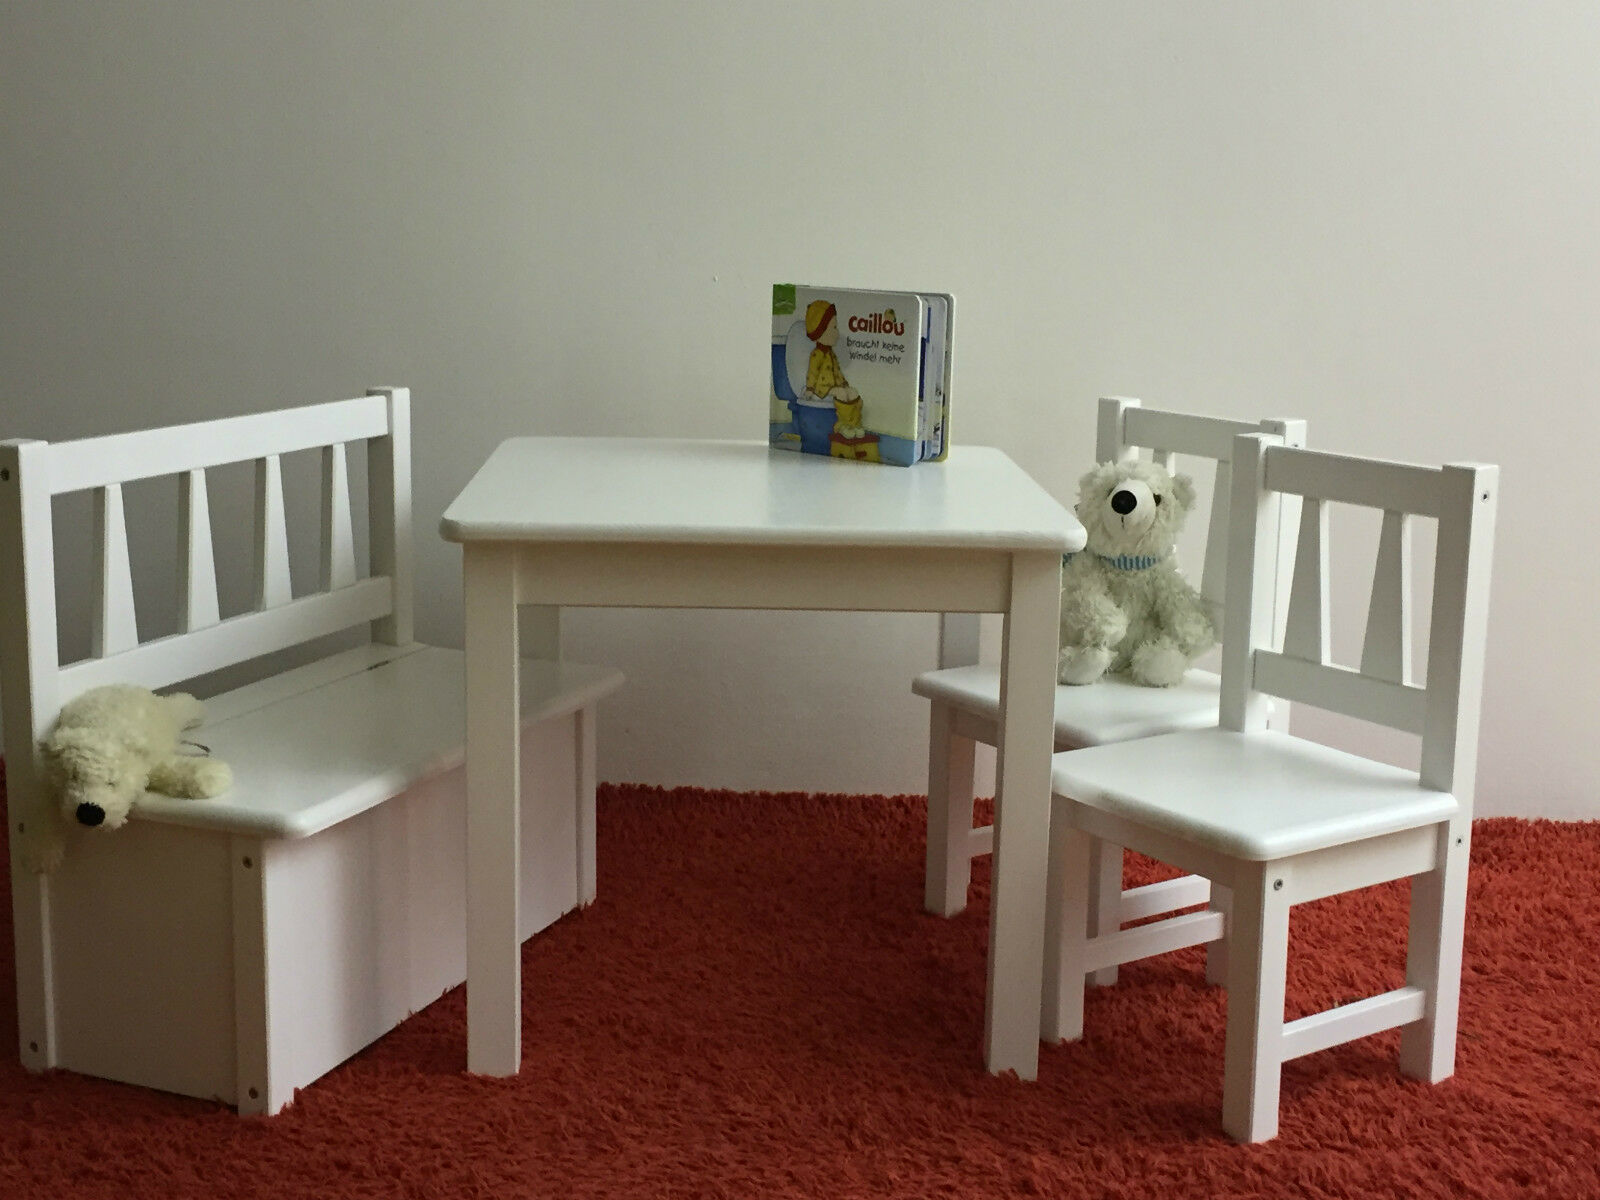 kindersitzgruppe kindertisch mit st hlen kindersitzbank kinder wei massivholz ebay. Black Bedroom Furniture Sets. Home Design Ideas